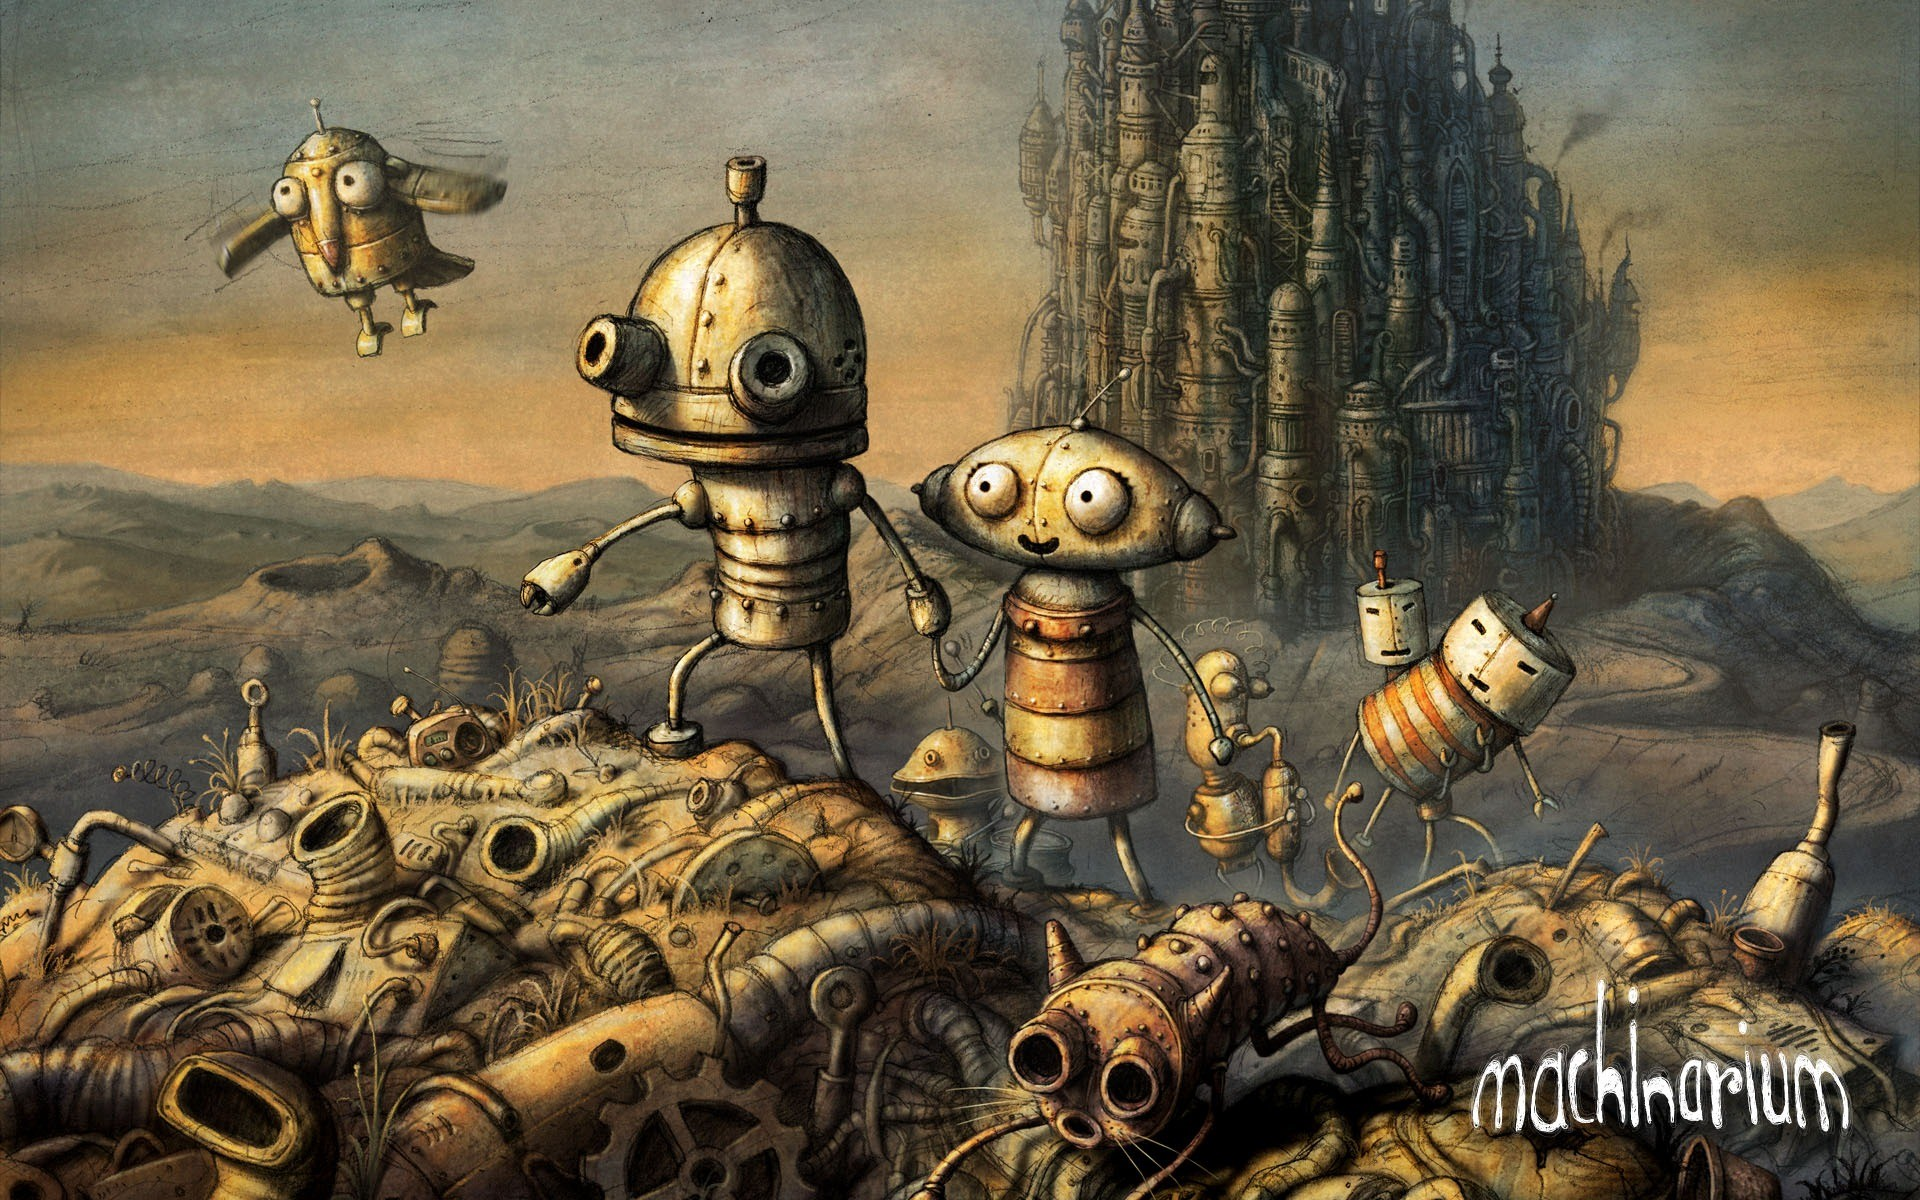 machinarium инди робот